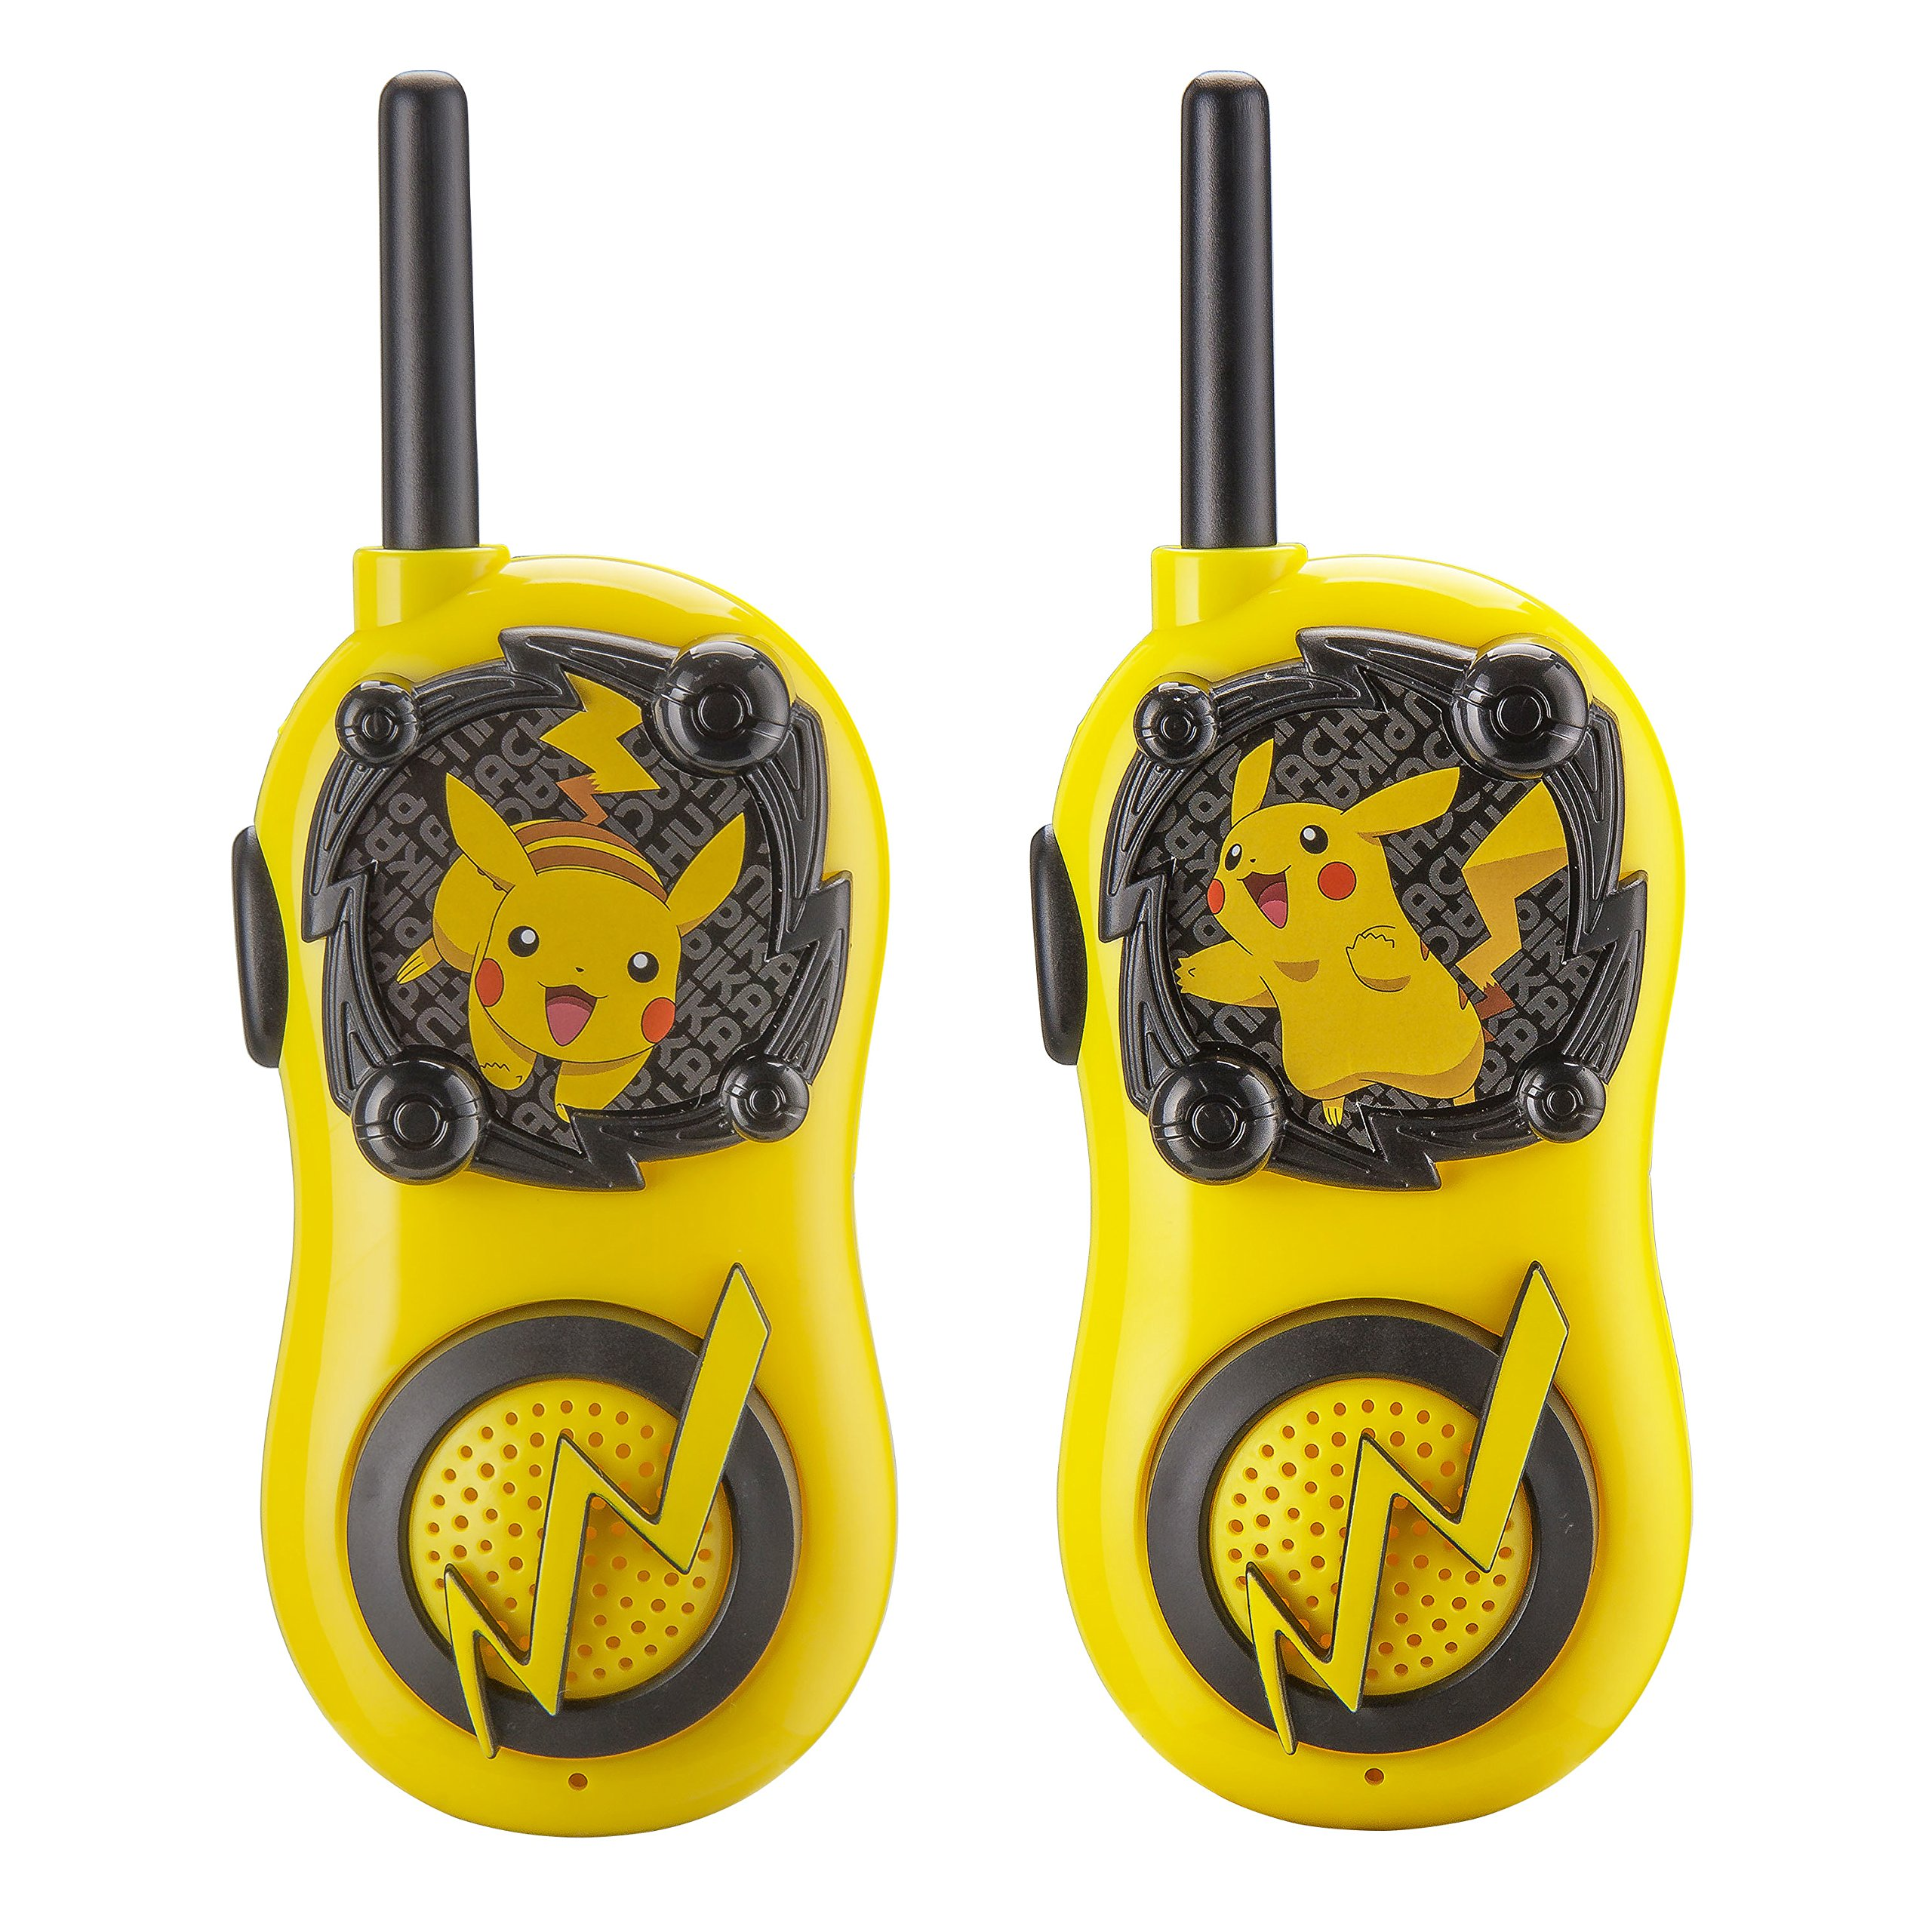 Pokemon Pikachu FRS Walkie Talkies for Kids Long Range Static Free Kid Friendly Easy to Use 2 Way Walkie Talkies